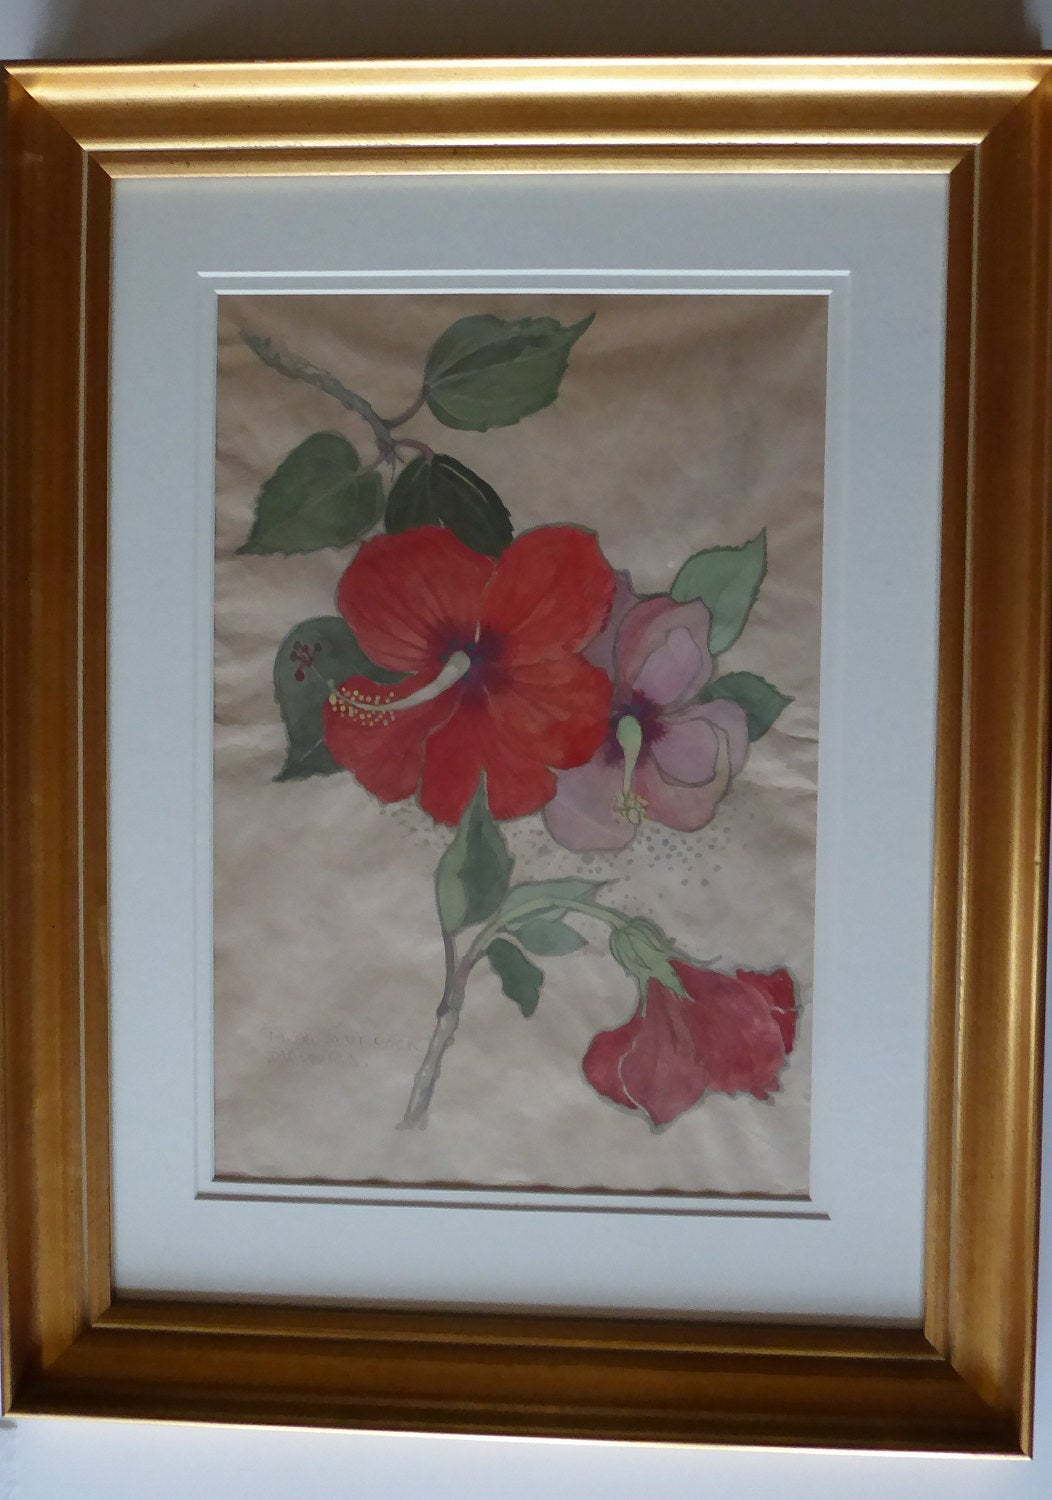 SCOTTISH ART. Watercolour by Mary Newbery Sturrock (1892 - 1985). Madeira; Floral Arrangement